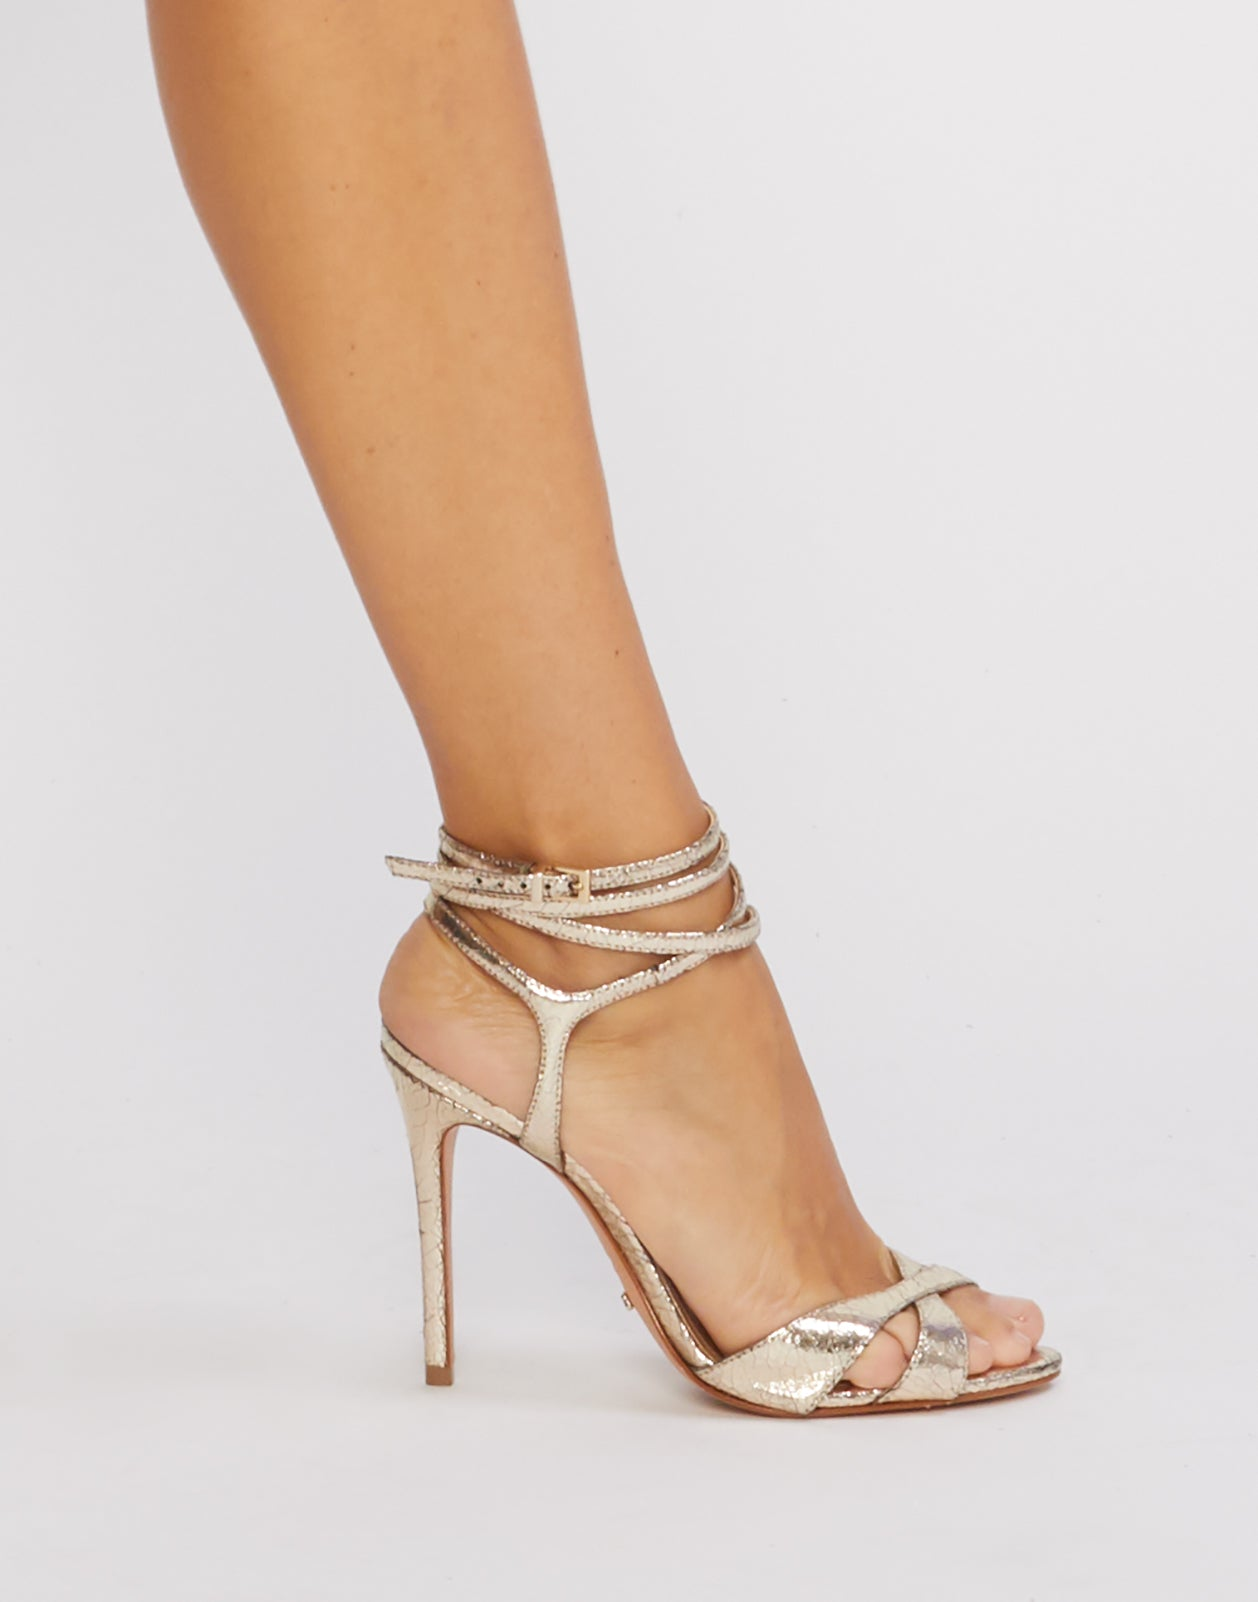 Side view of gold metallic stiletto heels with ankle straps